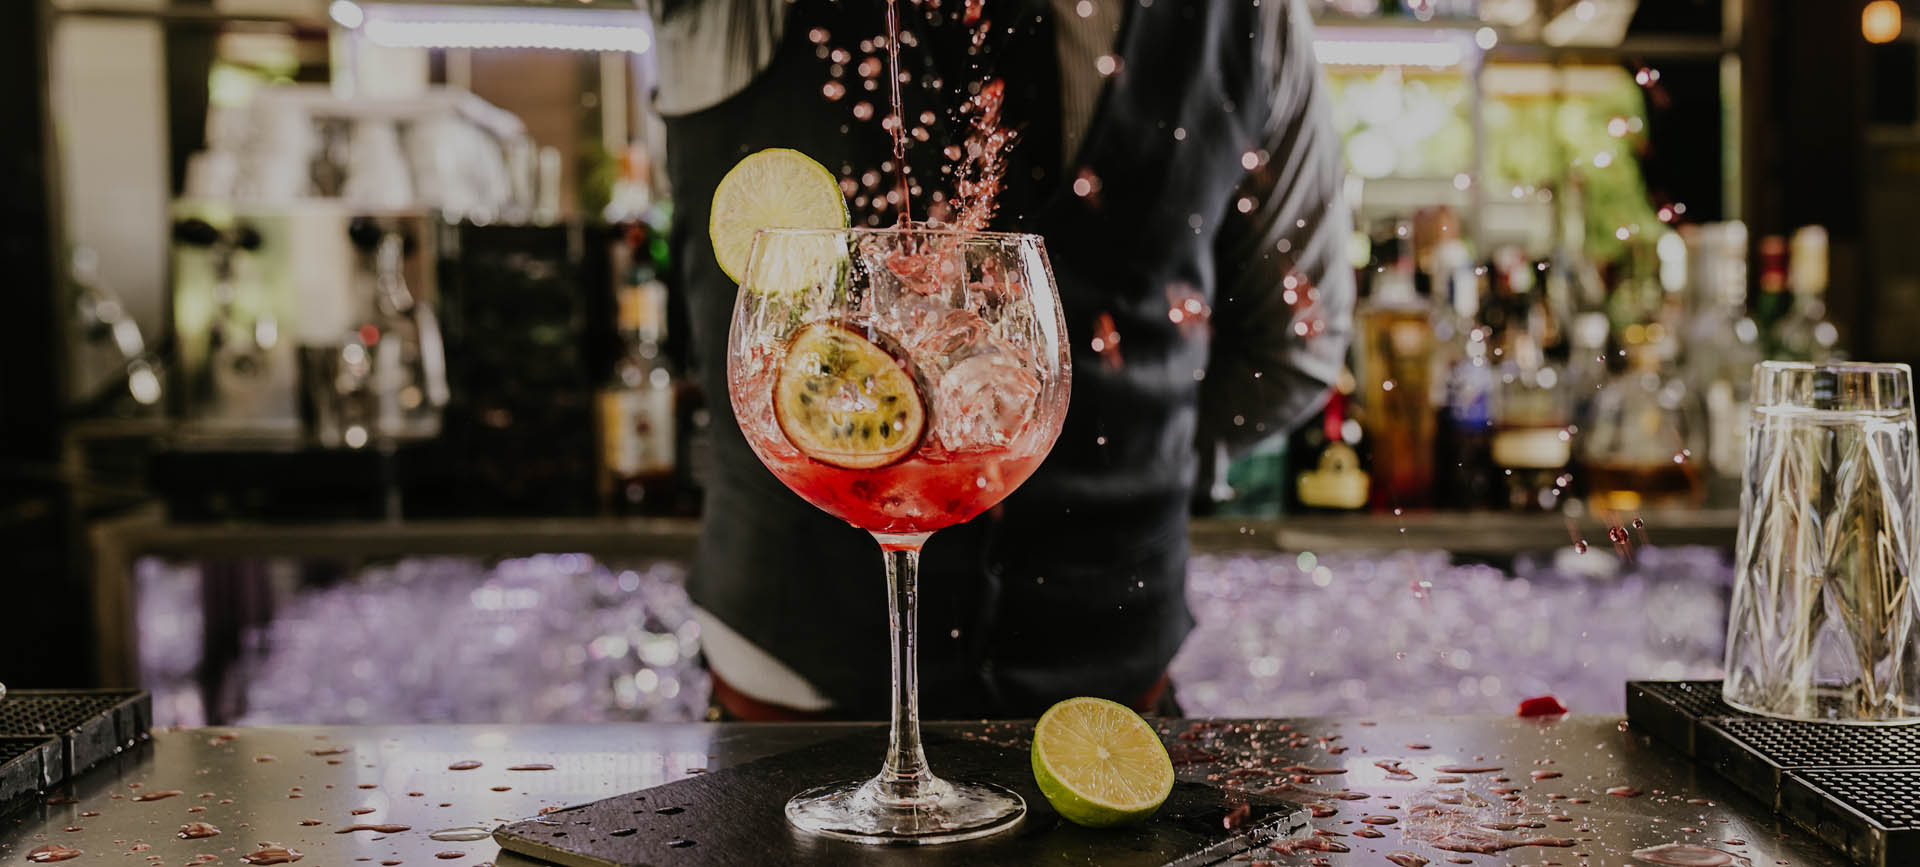 The Luggage Room bar opens in Mayfair